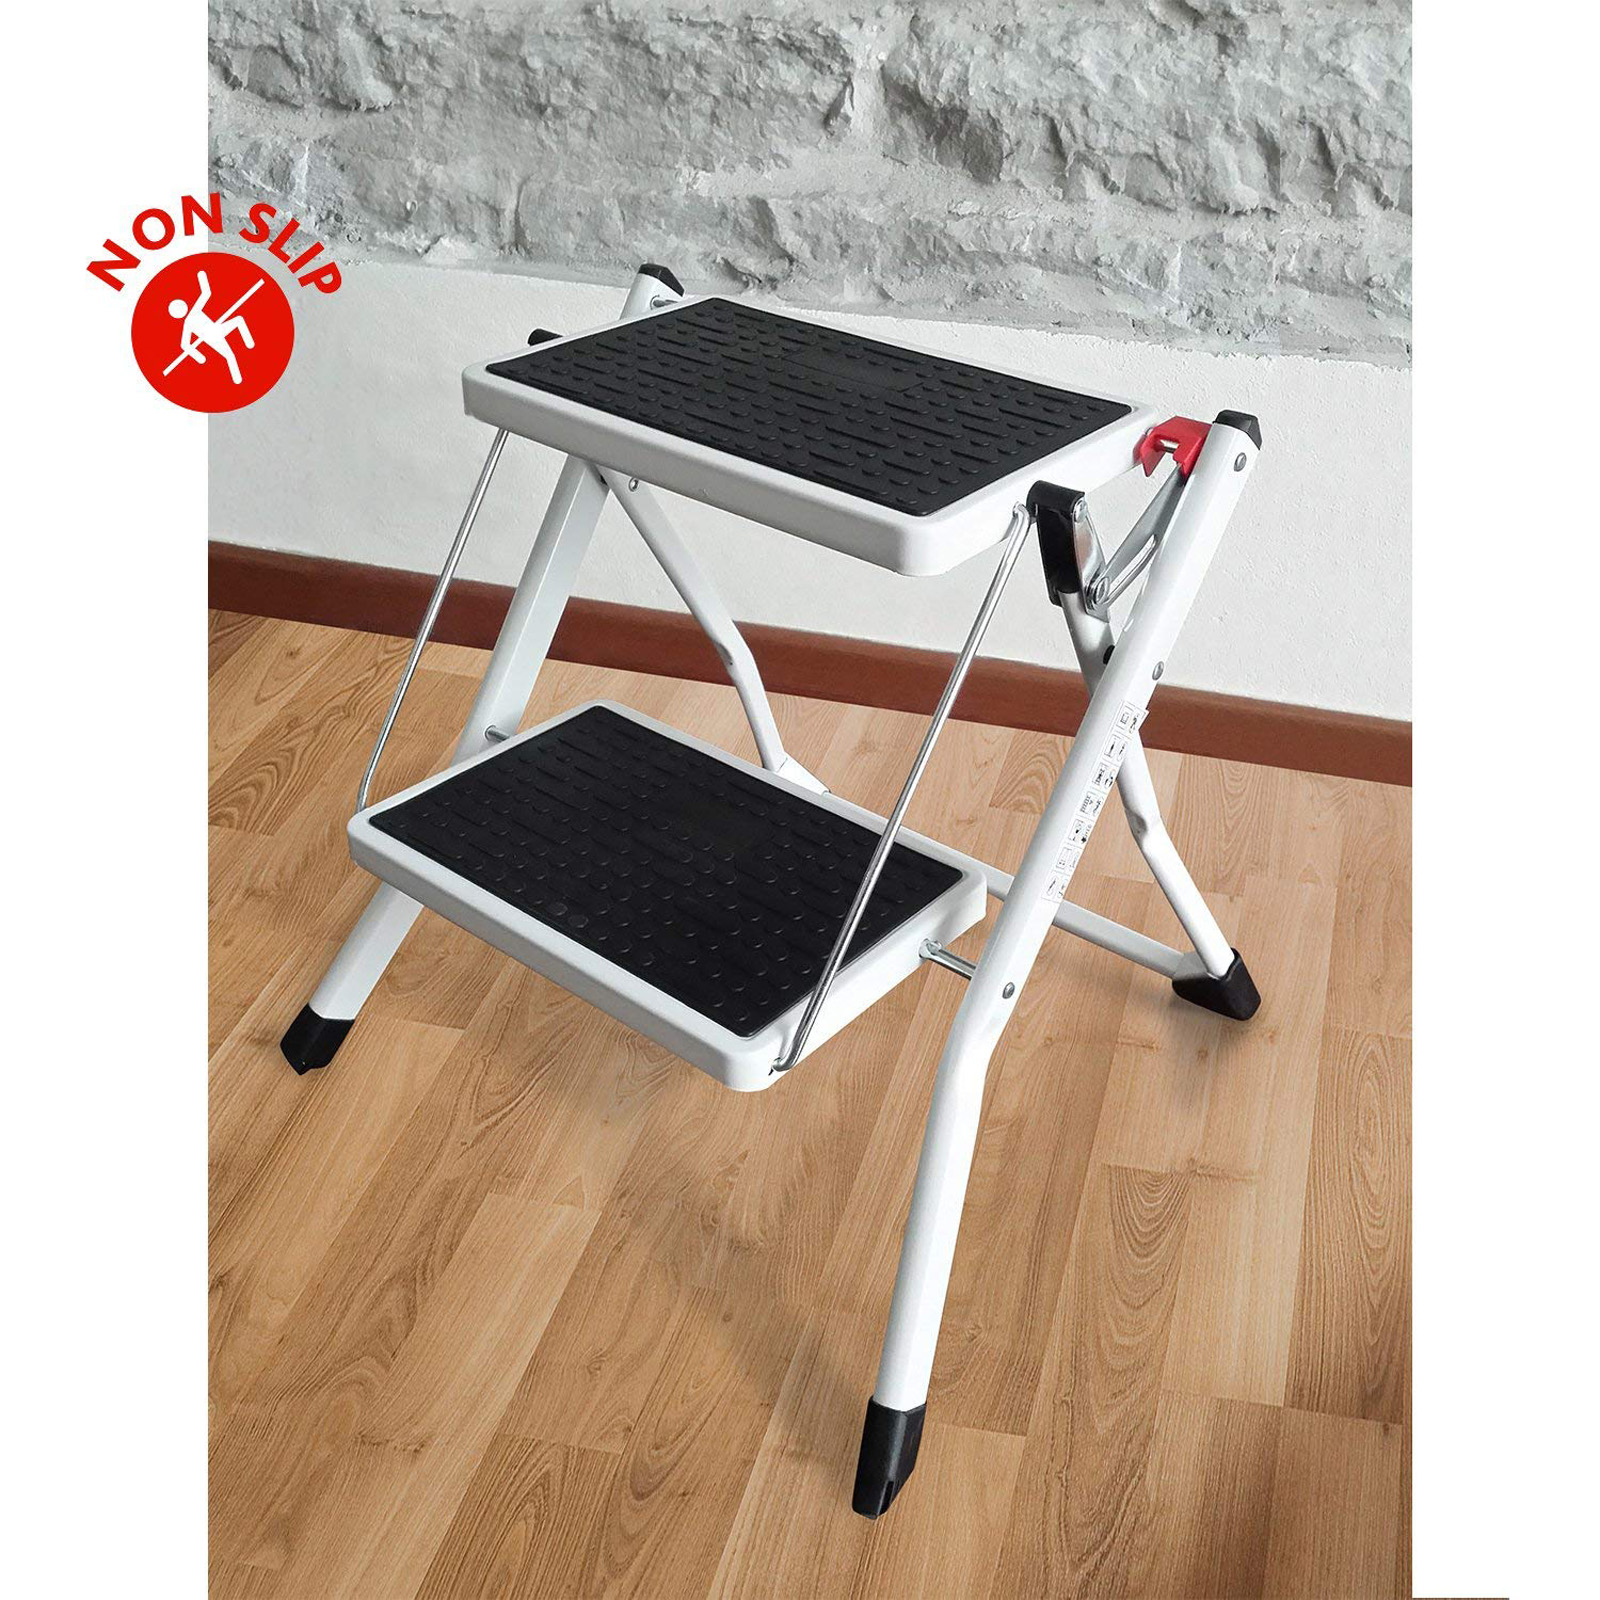 Heavy Duty Small 2 Step Steal Ladder Portable Folding